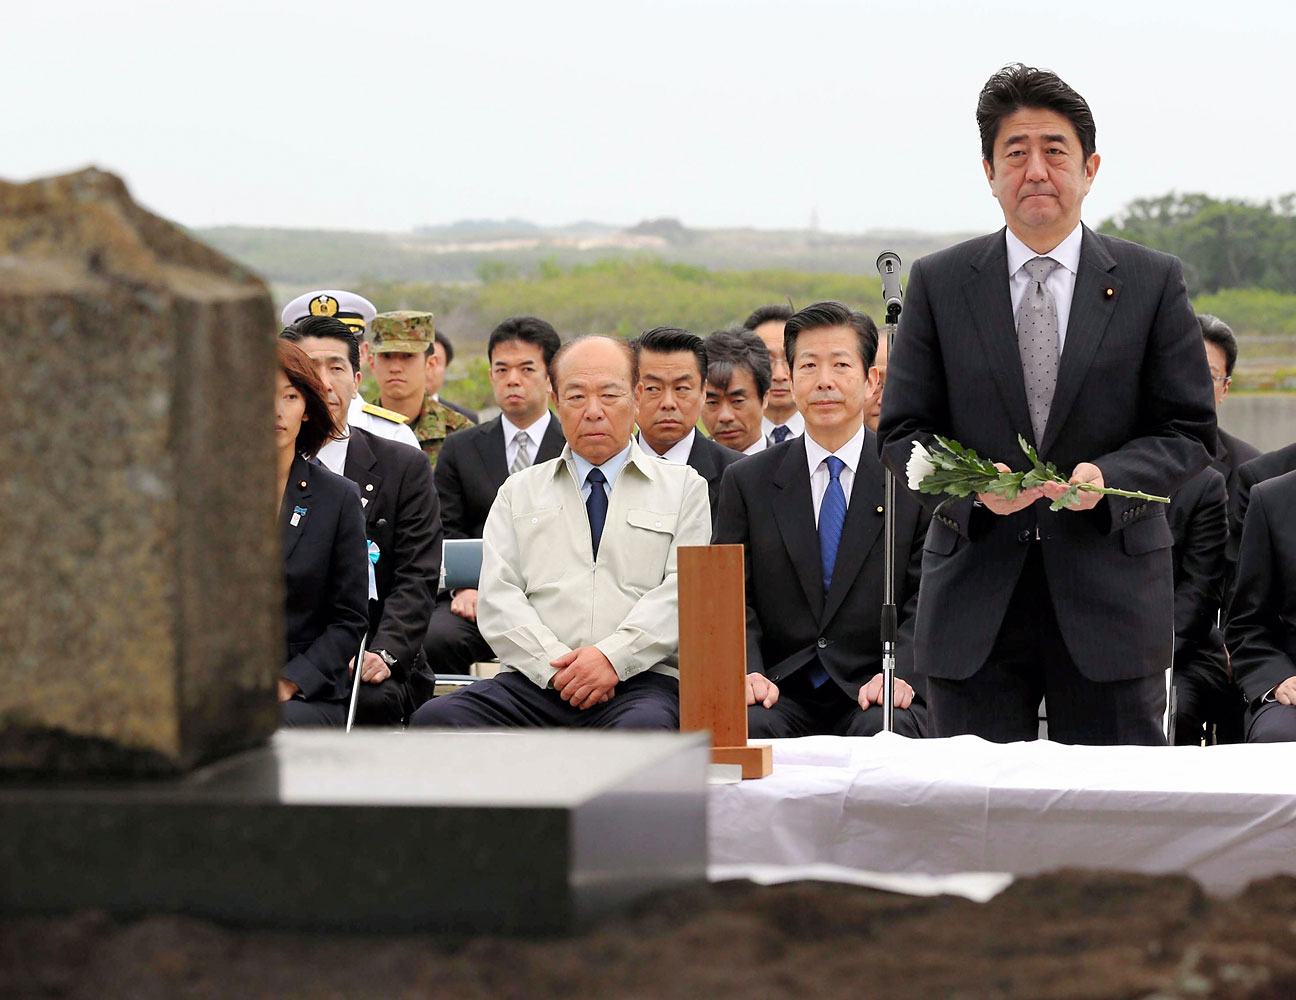 Japanese Prime Minister Shinzo Abe offers a flower durinf a memorial service to commemorate the war deads of the World War II at Iwo Island on April 14, 2013 in Ogasawara, Tokyo, Japan.